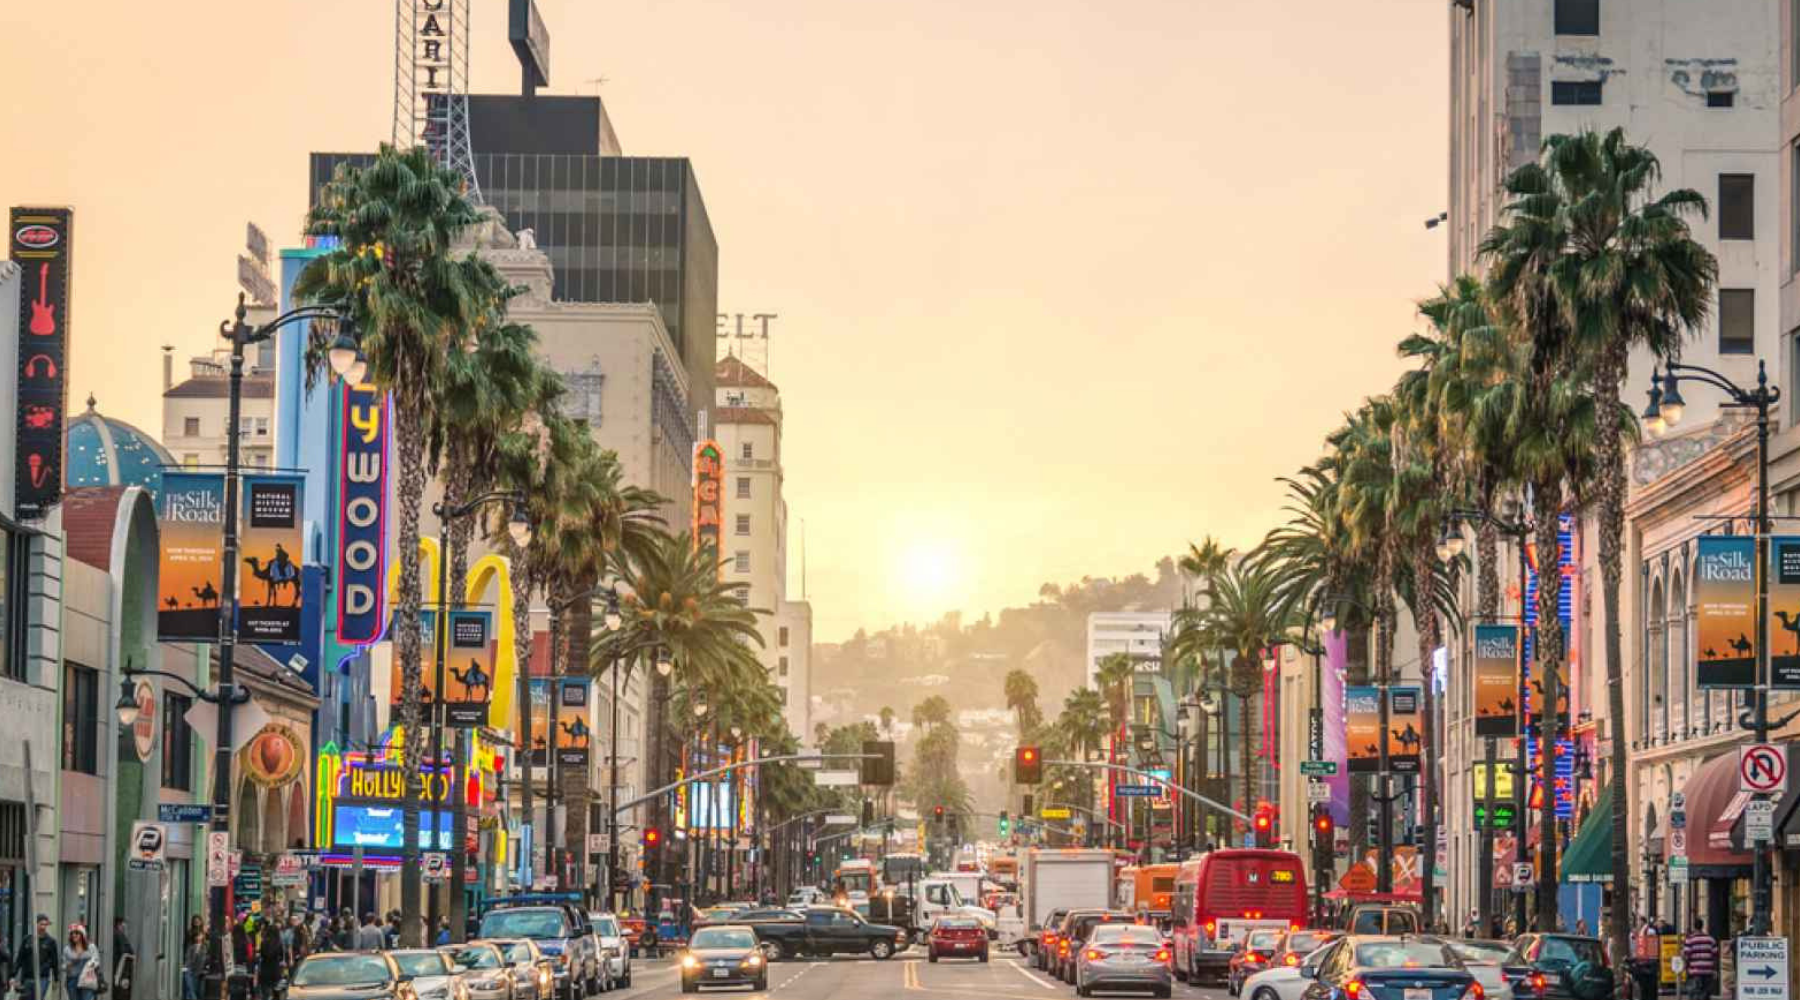 NEW List of Los Angeles Travel Blogs and Sites For Guest Posting wallpaper